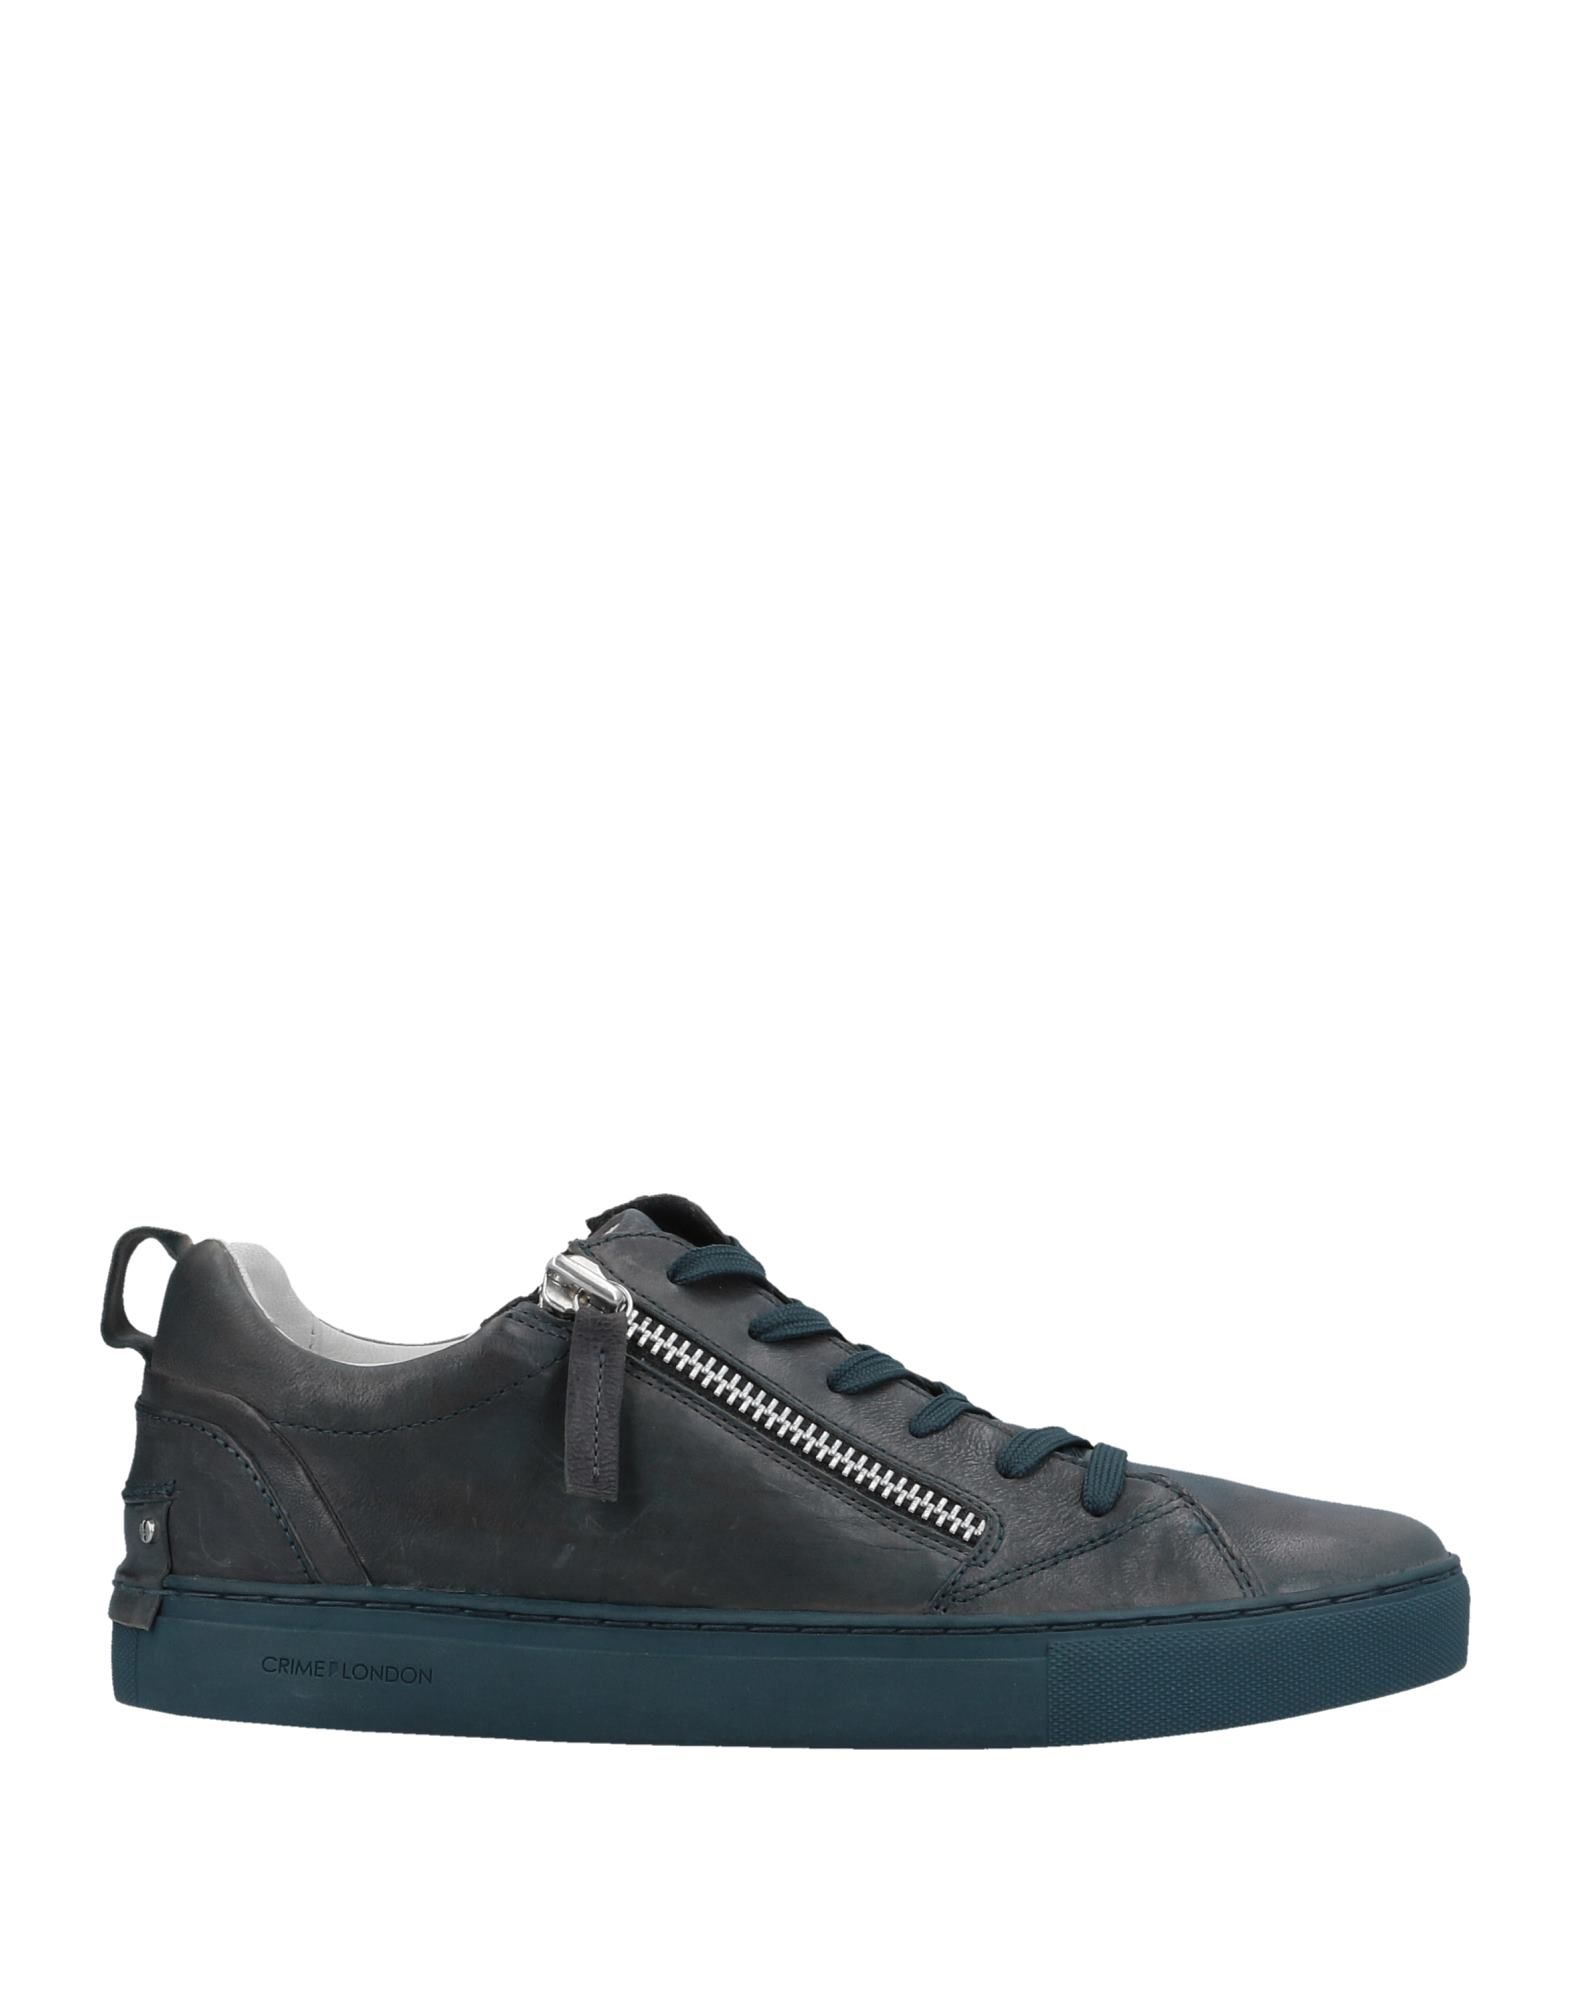 Crime London Sneakers Herren   11505062PV 1c09c3